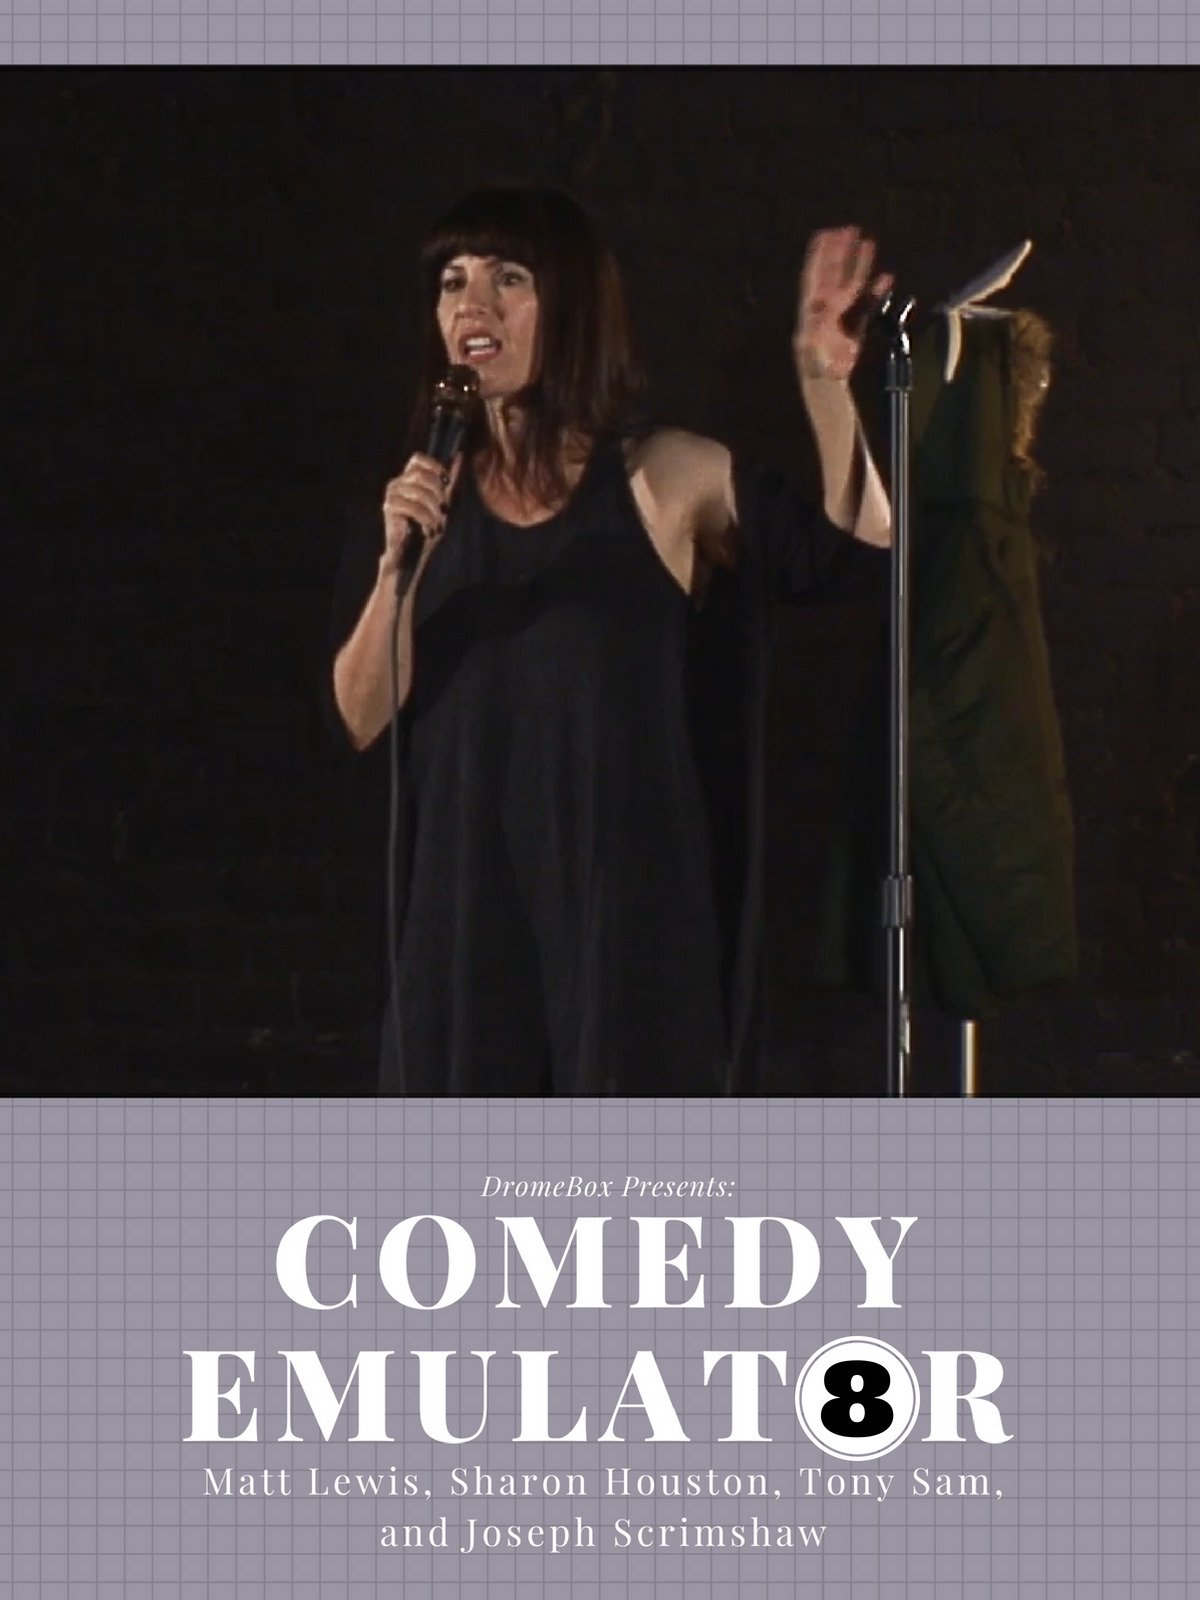 Comedy Emulator 8 on Amazon Prime Instant Video UK